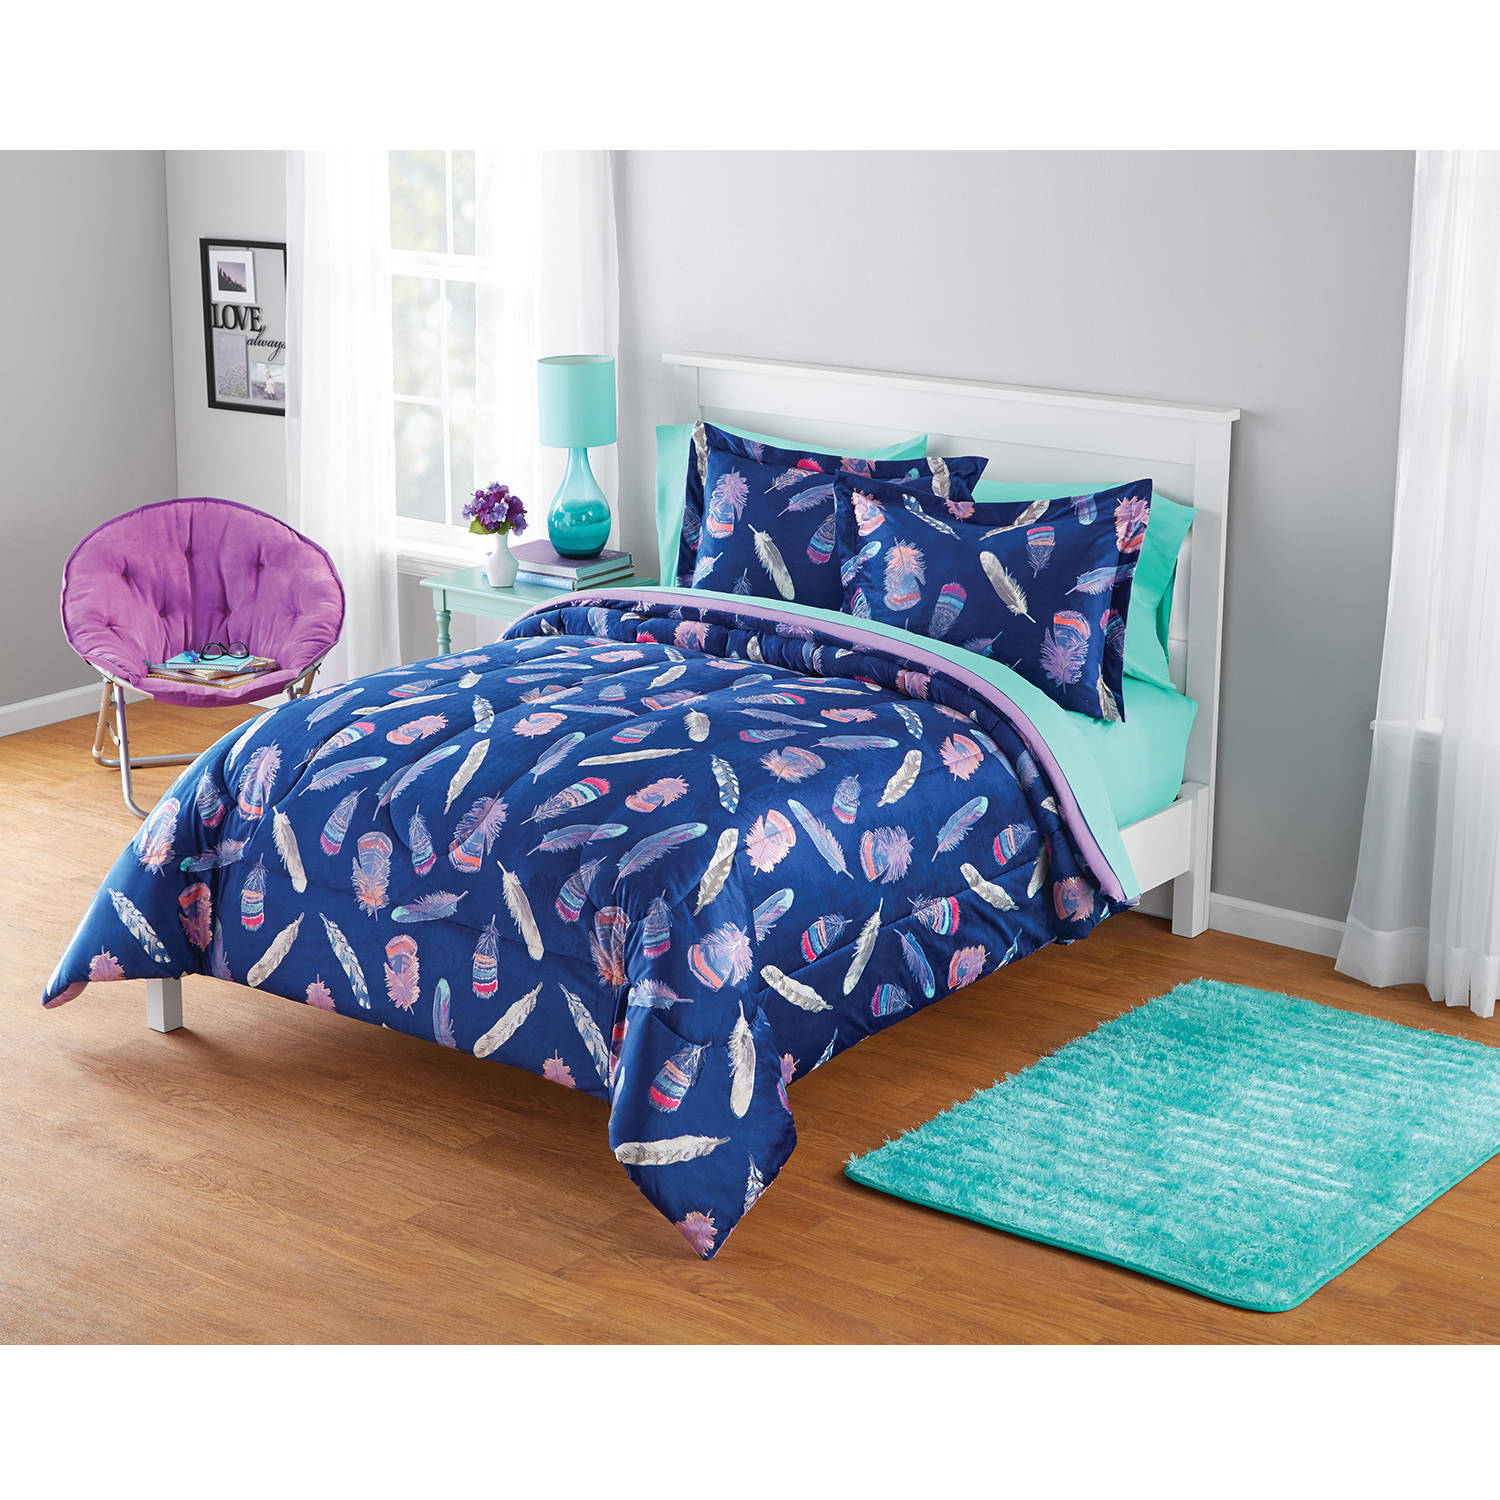 n bed bedding qvc sets piece com reversible ensembles for color teal the twin comforter home northern jacquard c set nights